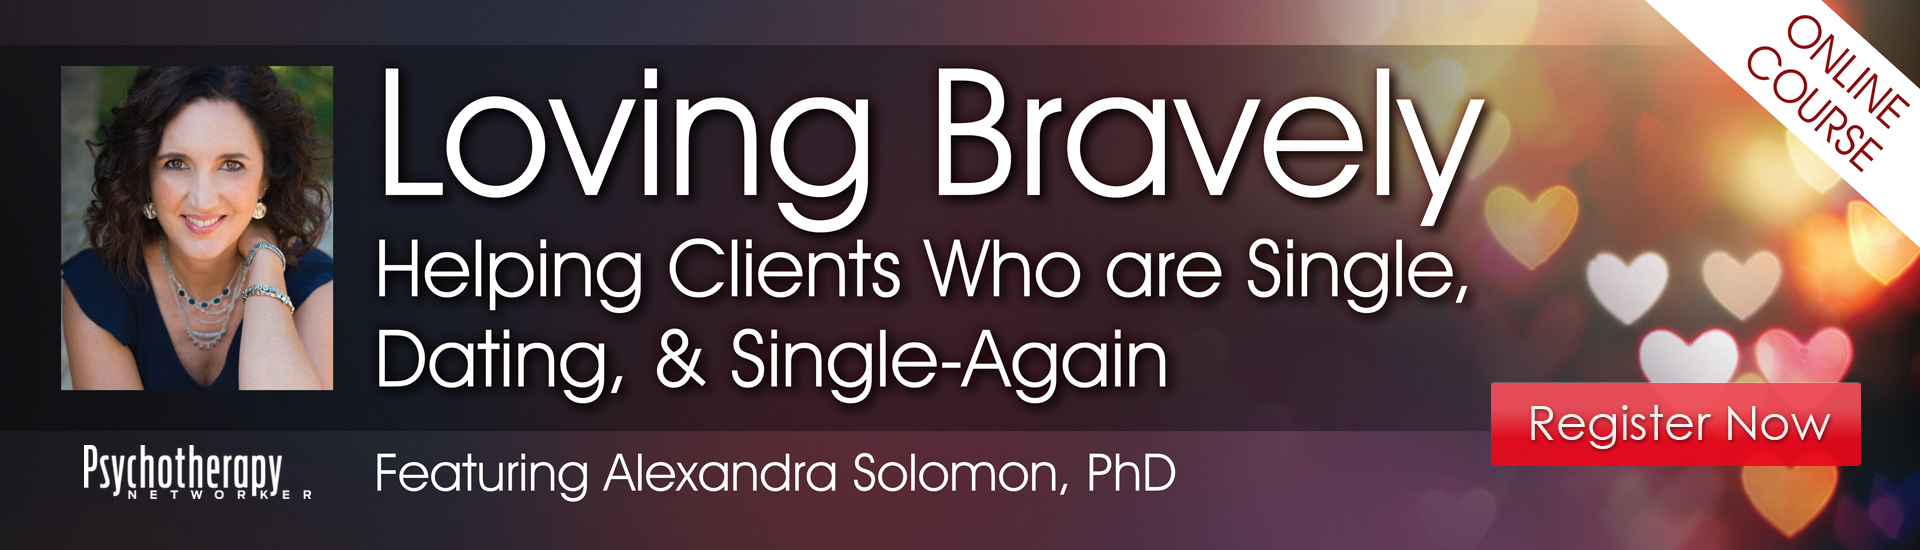 Loving Bravely: Helping Clients Who are Single, Dating, & Single-Again